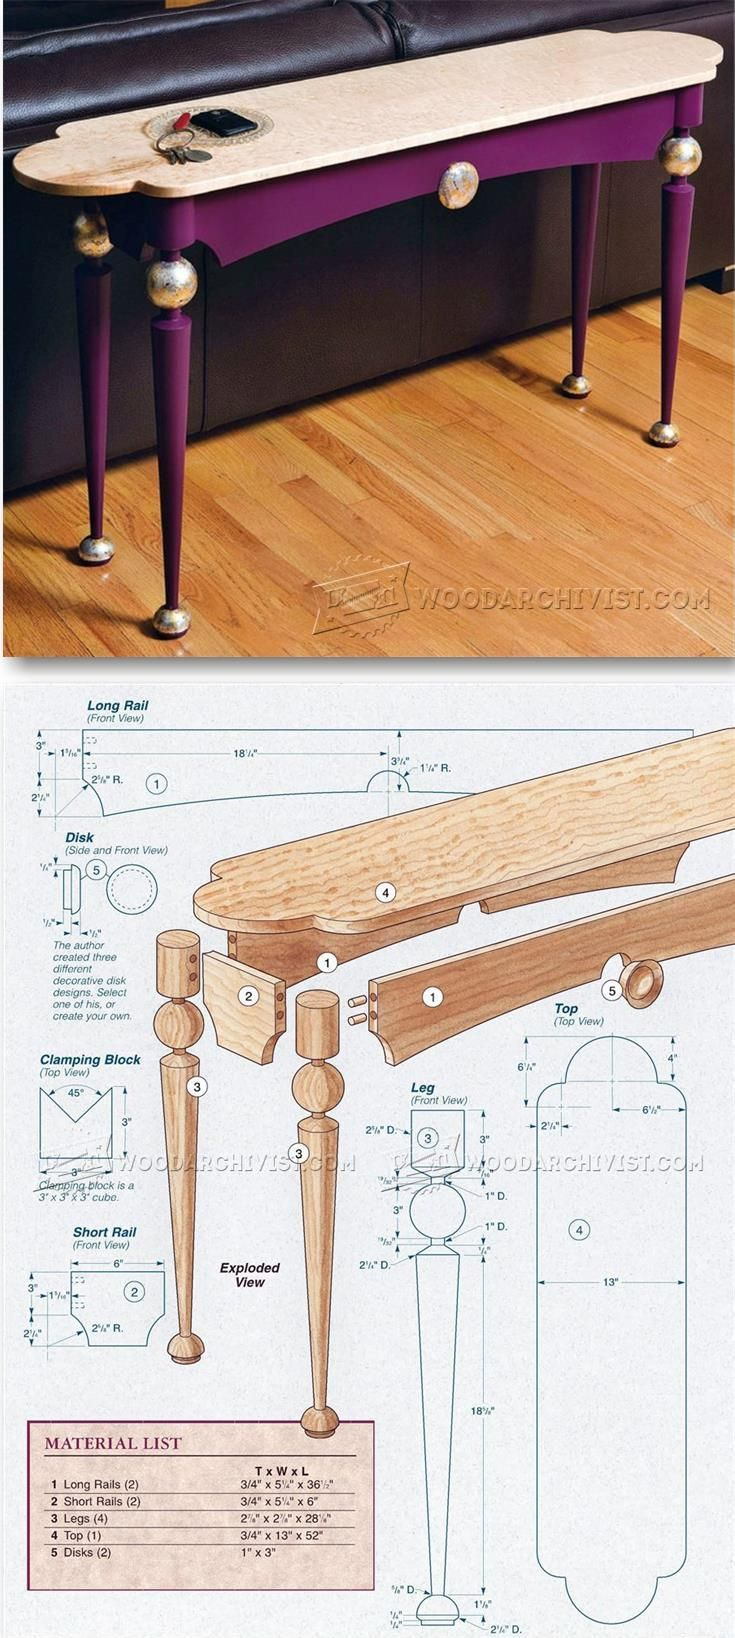 Sofa Table Plans - Furniture Plans and Projects | WoodArchivist.com